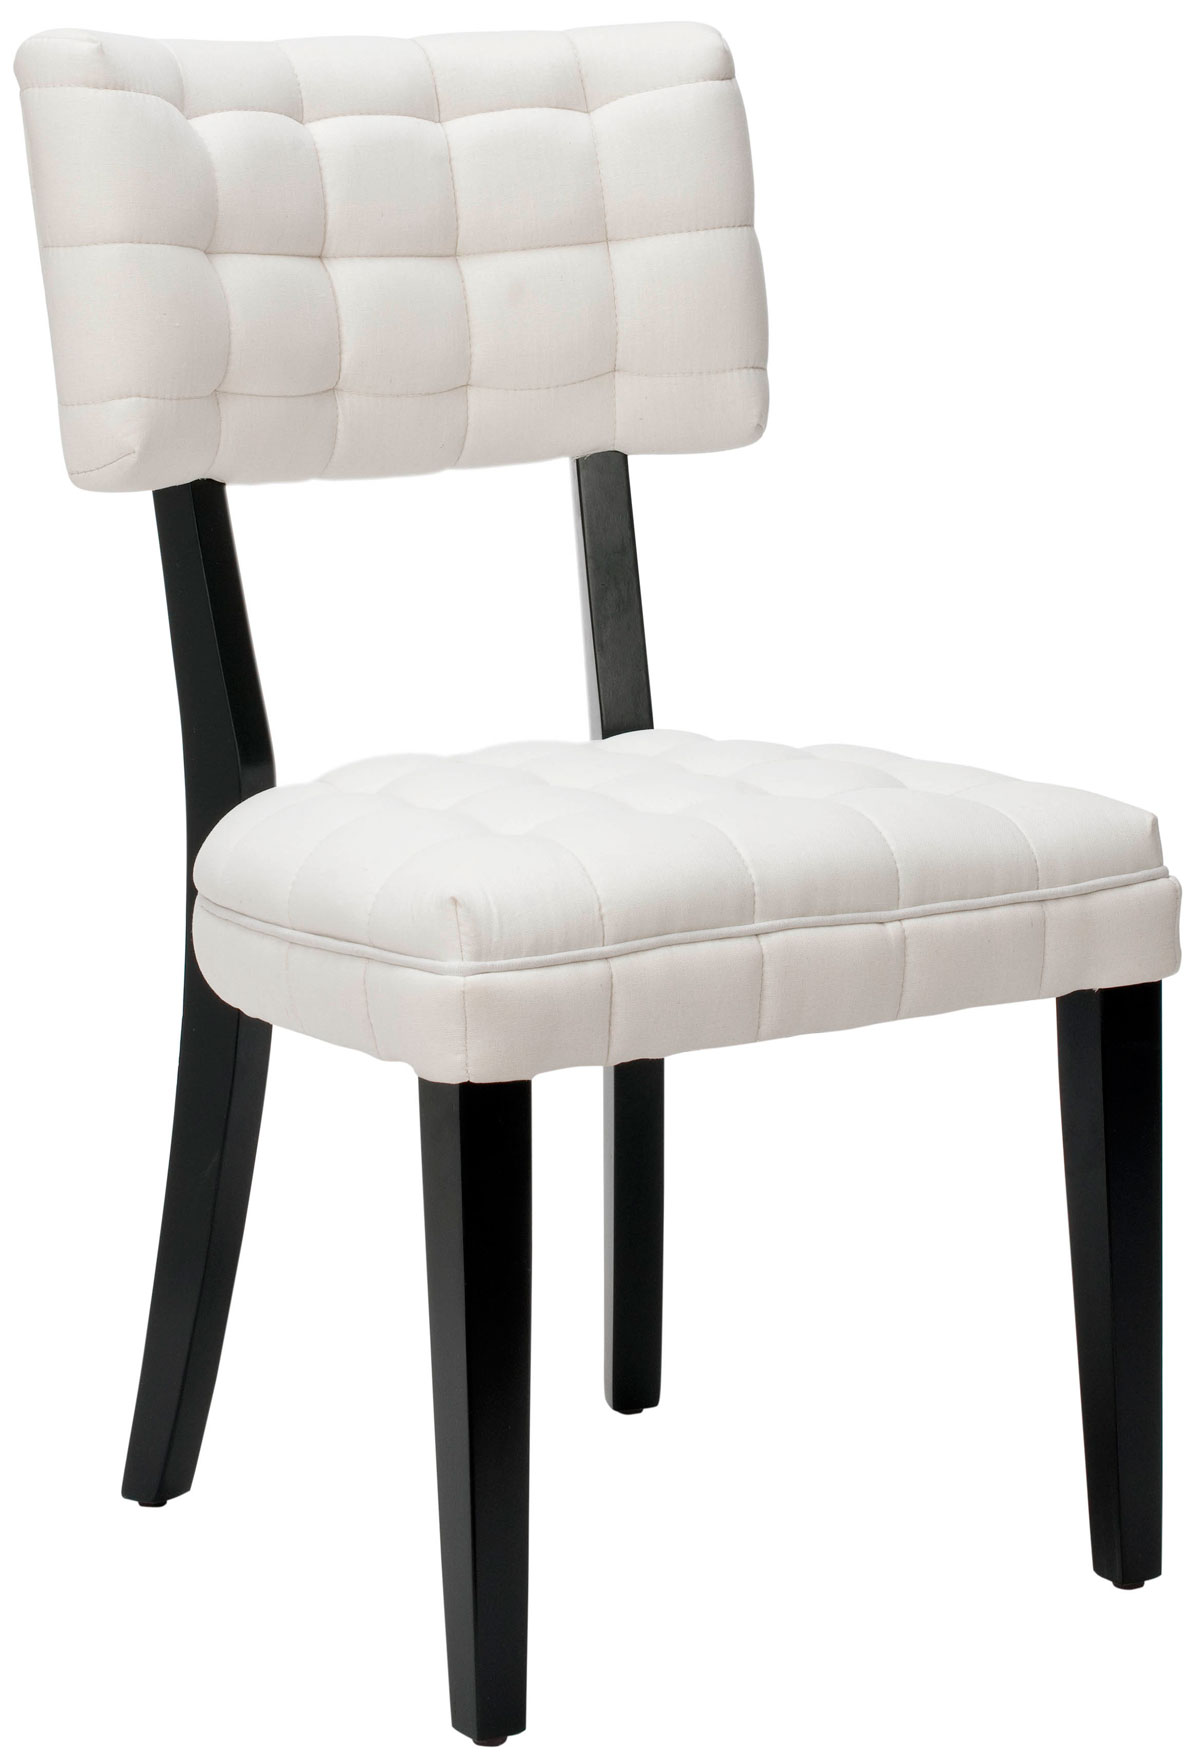 mcr5003a set2 dining chairs furniture by safavieh. Black Bedroom Furniture Sets. Home Design Ideas